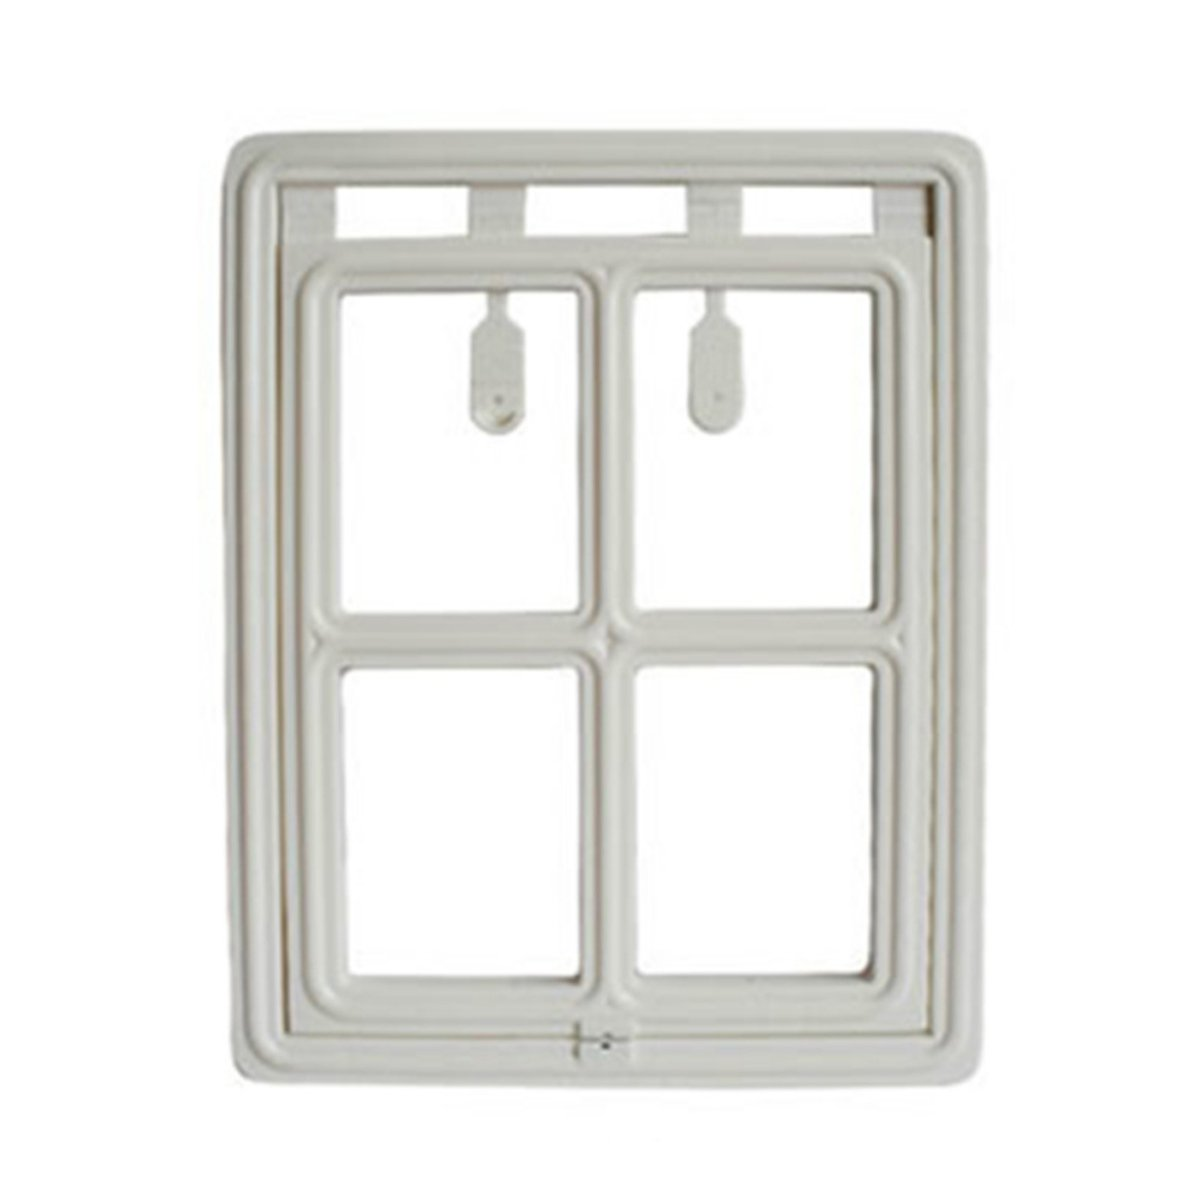 yIFeNG Pet Screen Door Dog Cat Flap With Magnetic Automatic Lock (Large, White)